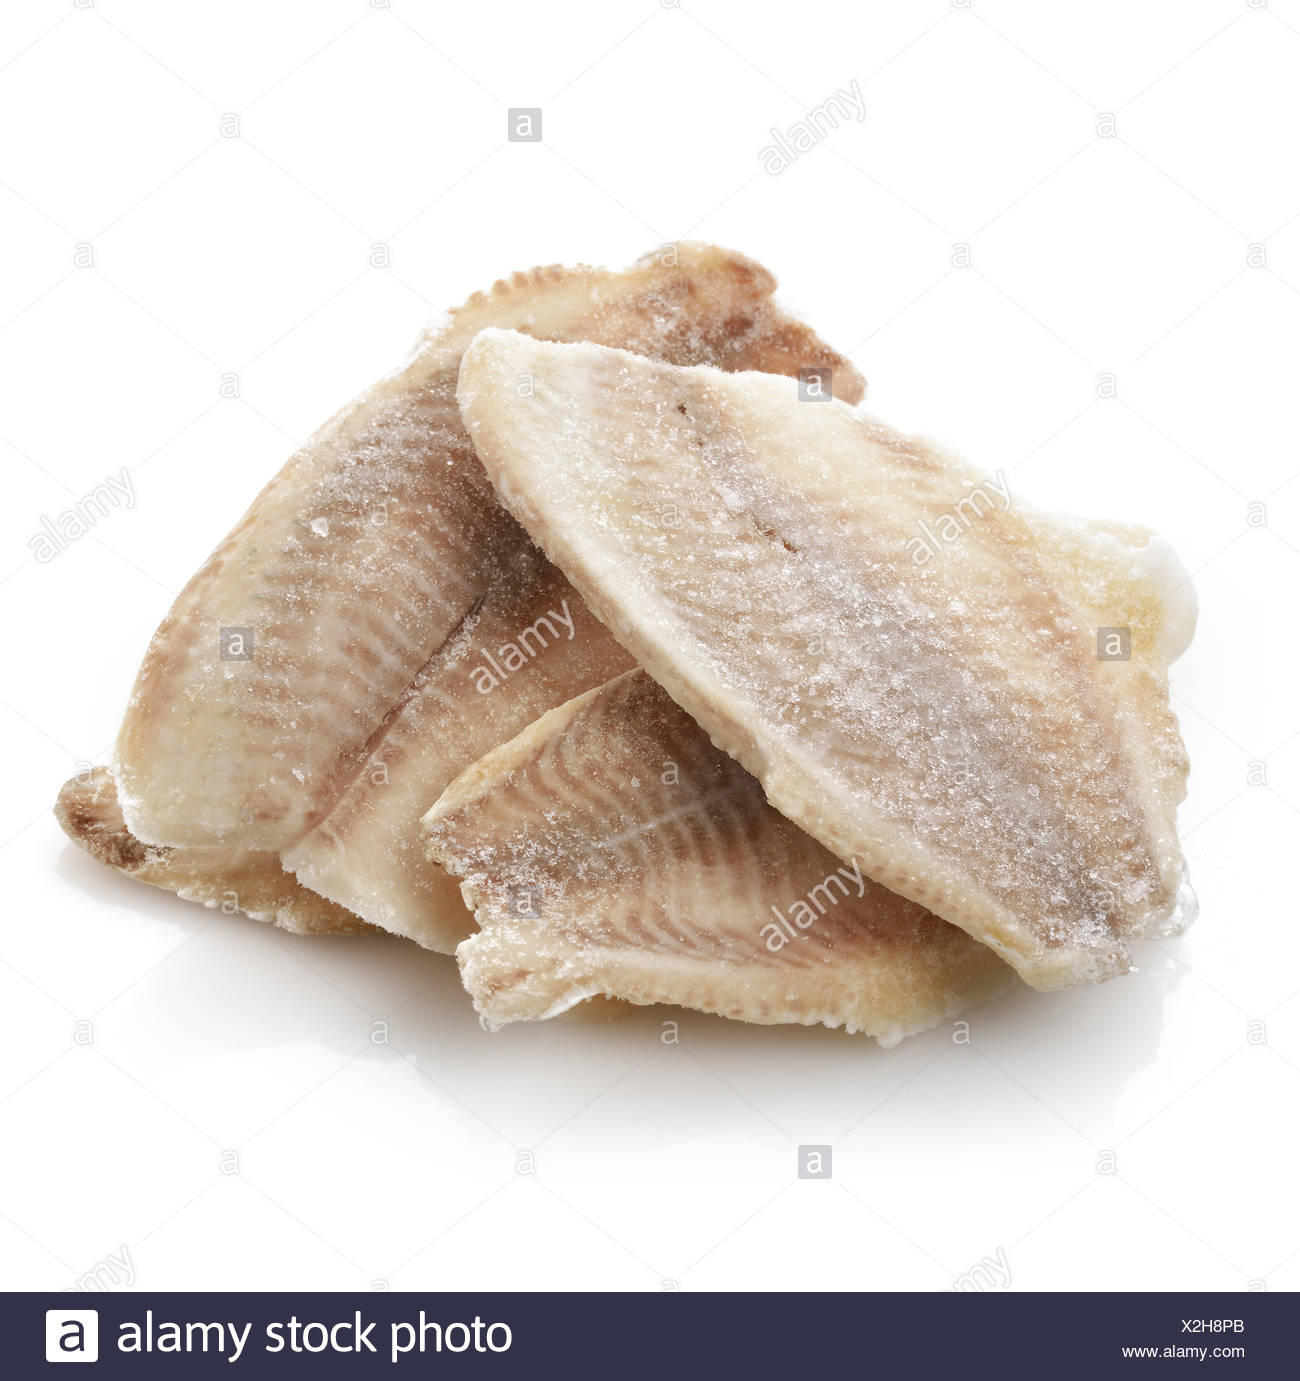 Frozen Tilapia Fillet Stock Photo Alamy